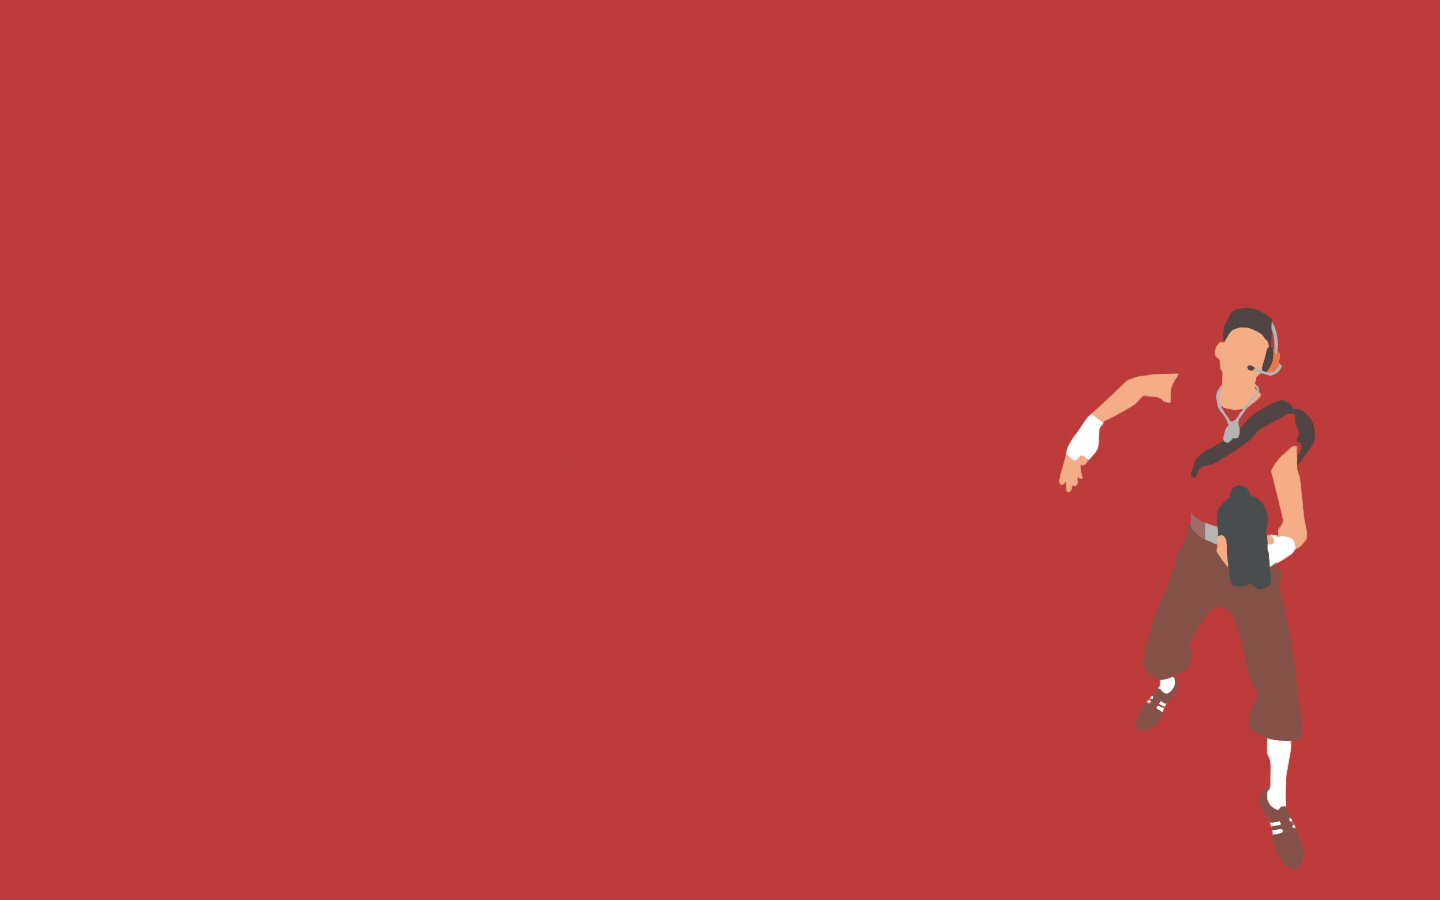 download TF2 Red Scout Minimalist Wallpaper by bohitargep 1440x900